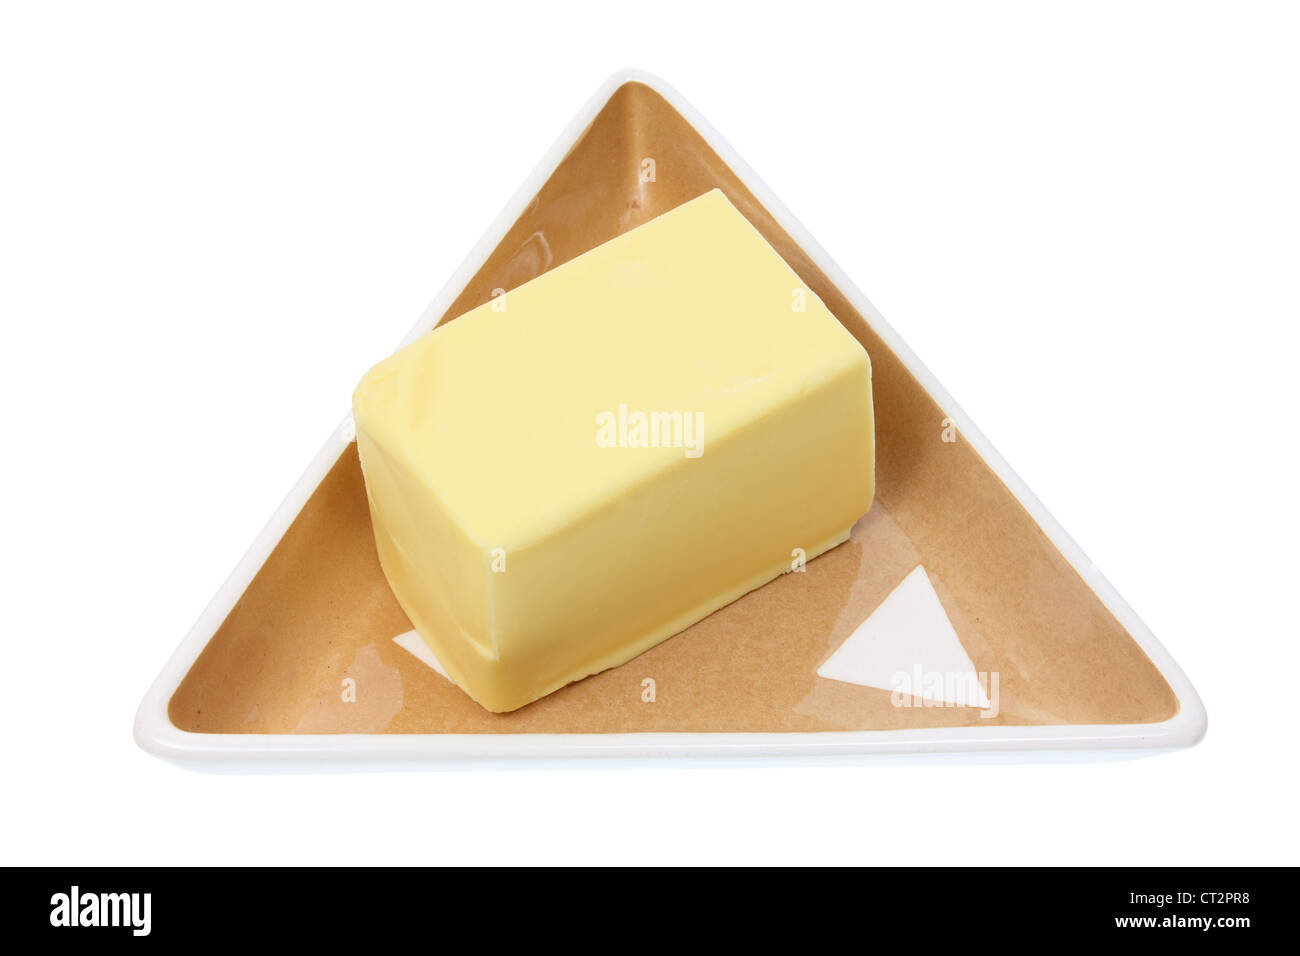 Butter on Plate - Stock Image